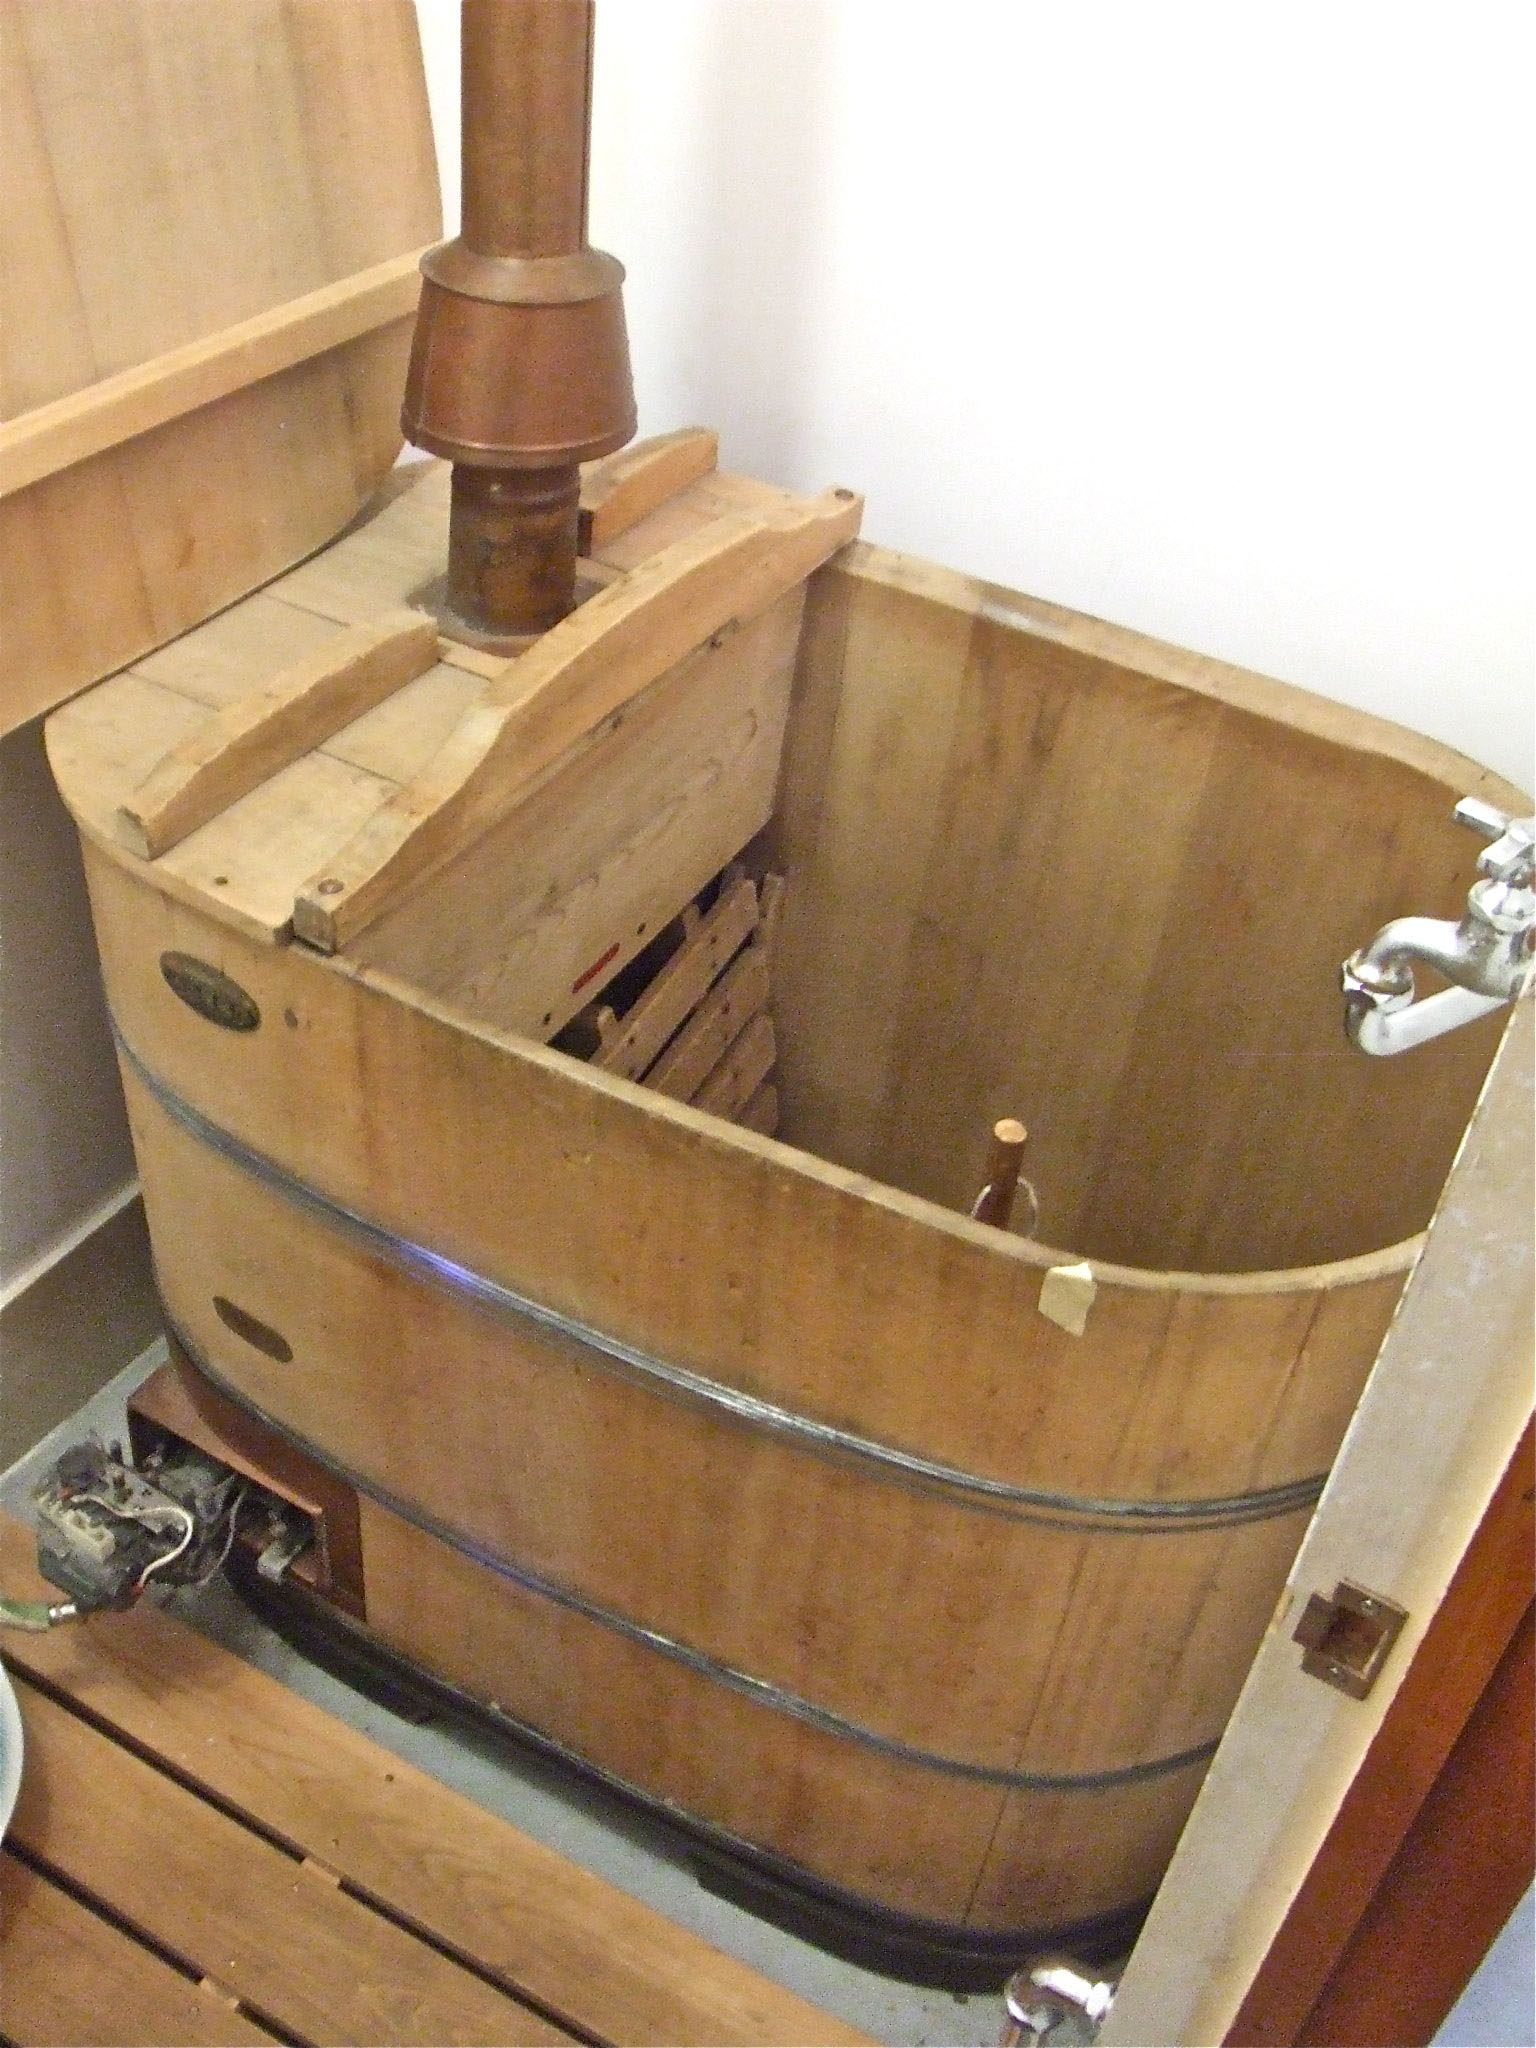 Retro charm: To heat the water for this old-style wooden bath, ...